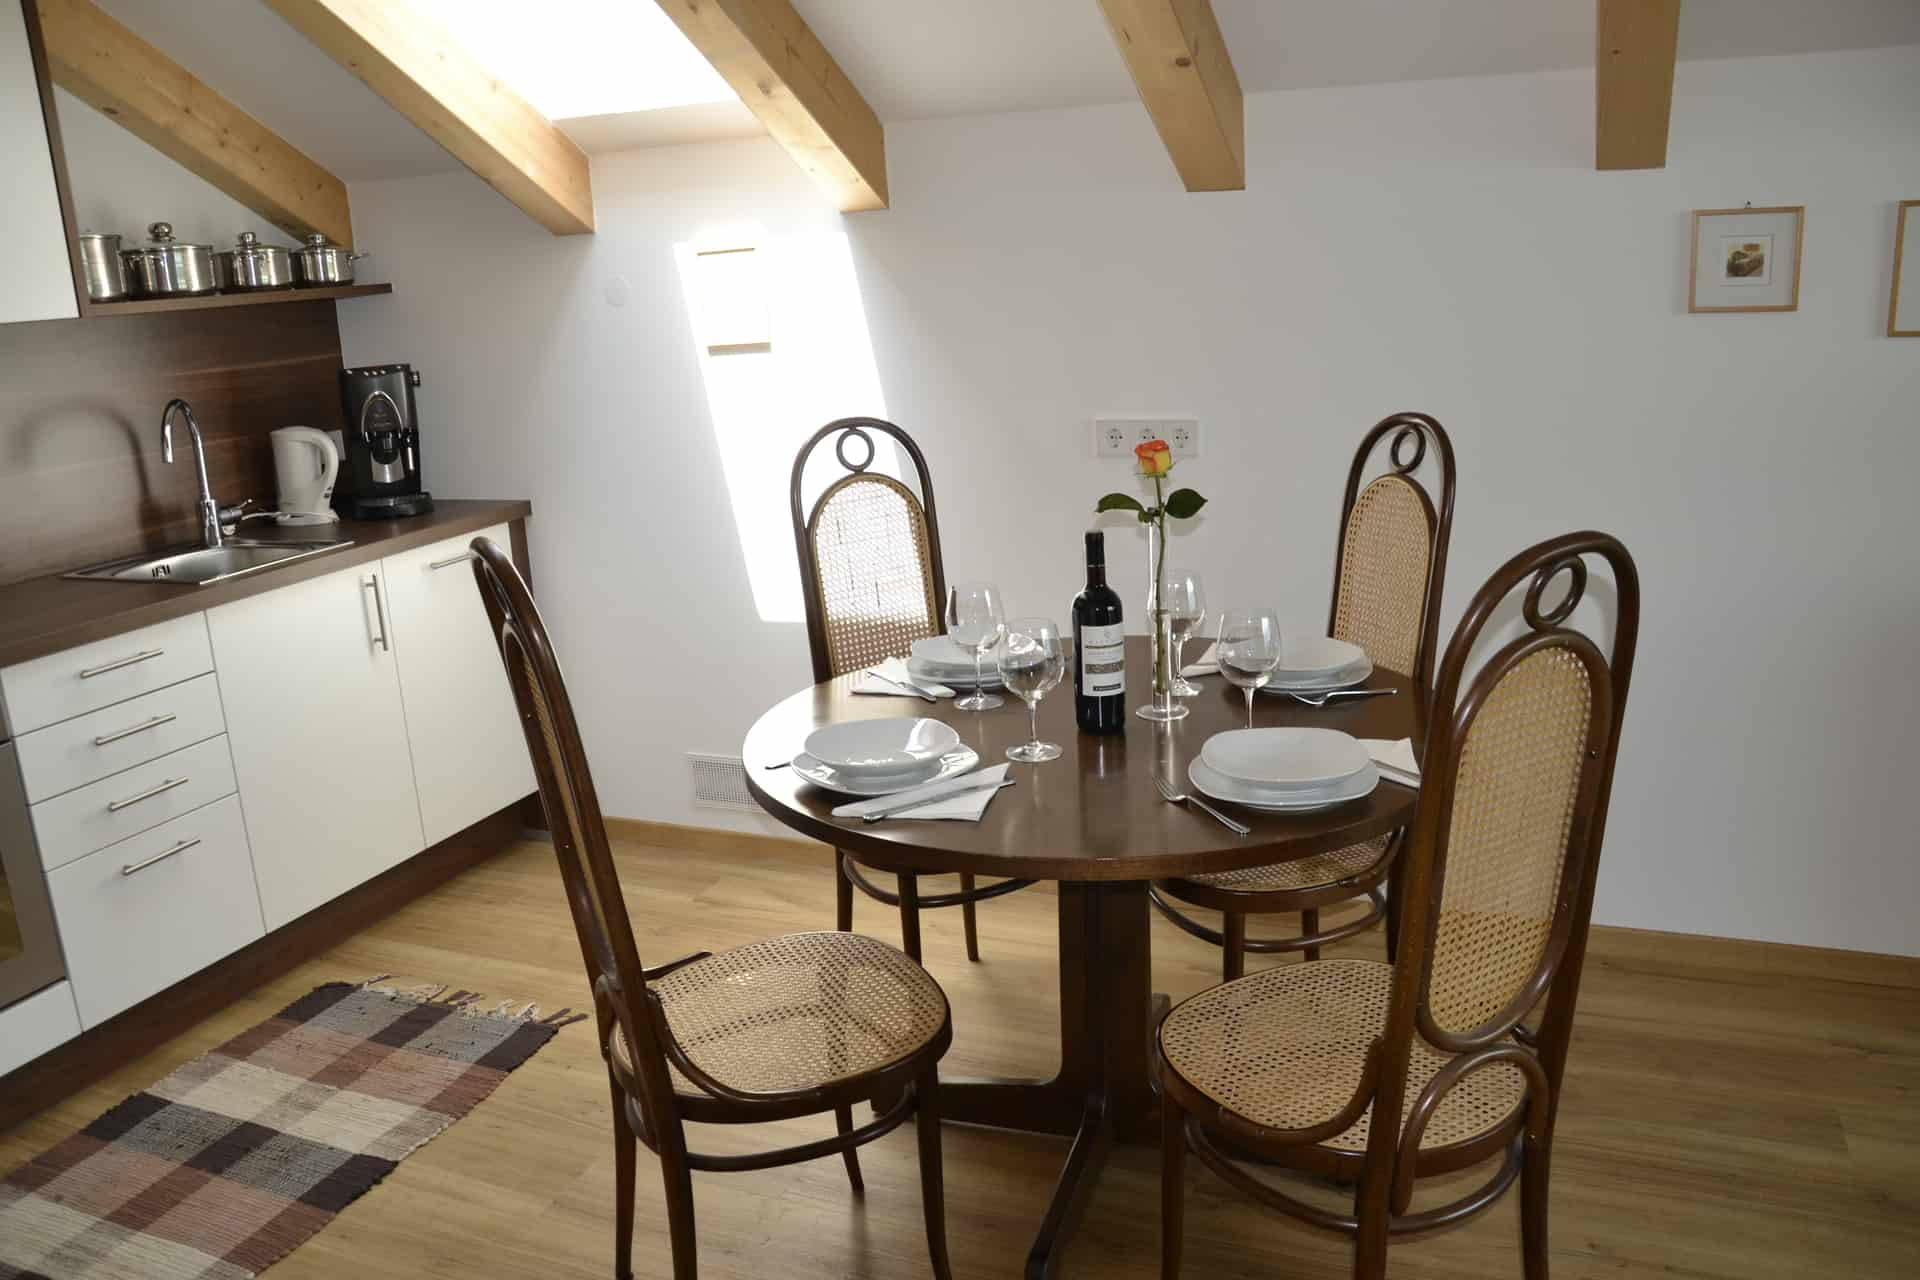 Appartamento per self-catering in Alto Adige